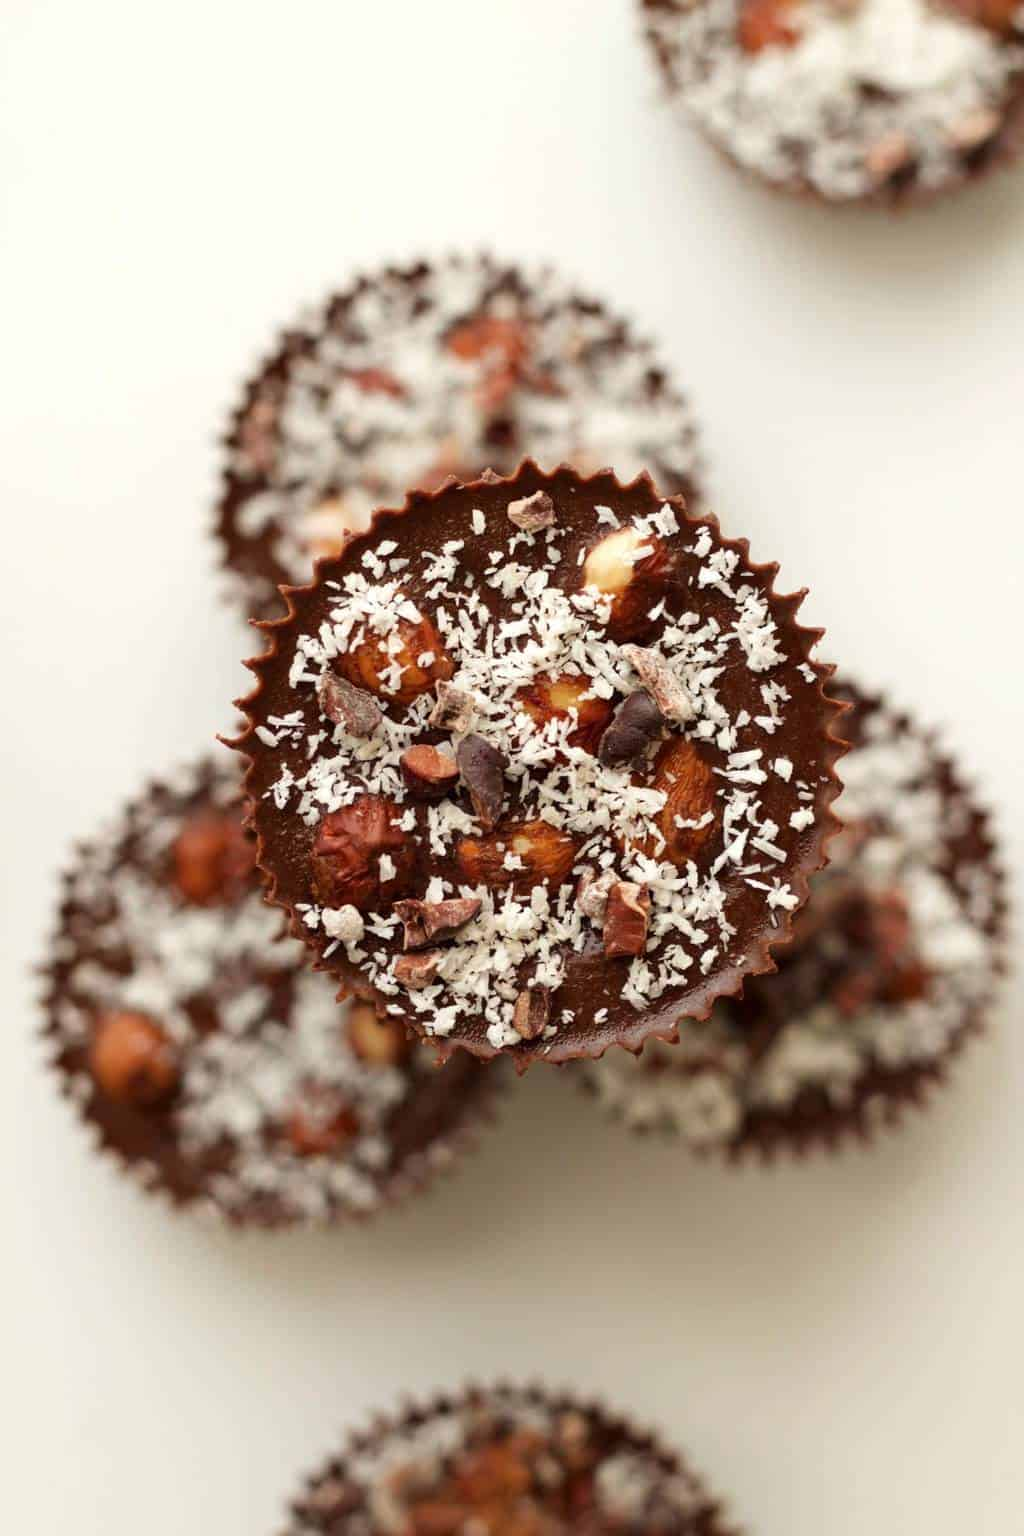 Raw Chocolate Hazelnut Cups #vegan #lovingitvegan #raw #rawvegan #chocolate #dessert #glutenfree #dairyfree